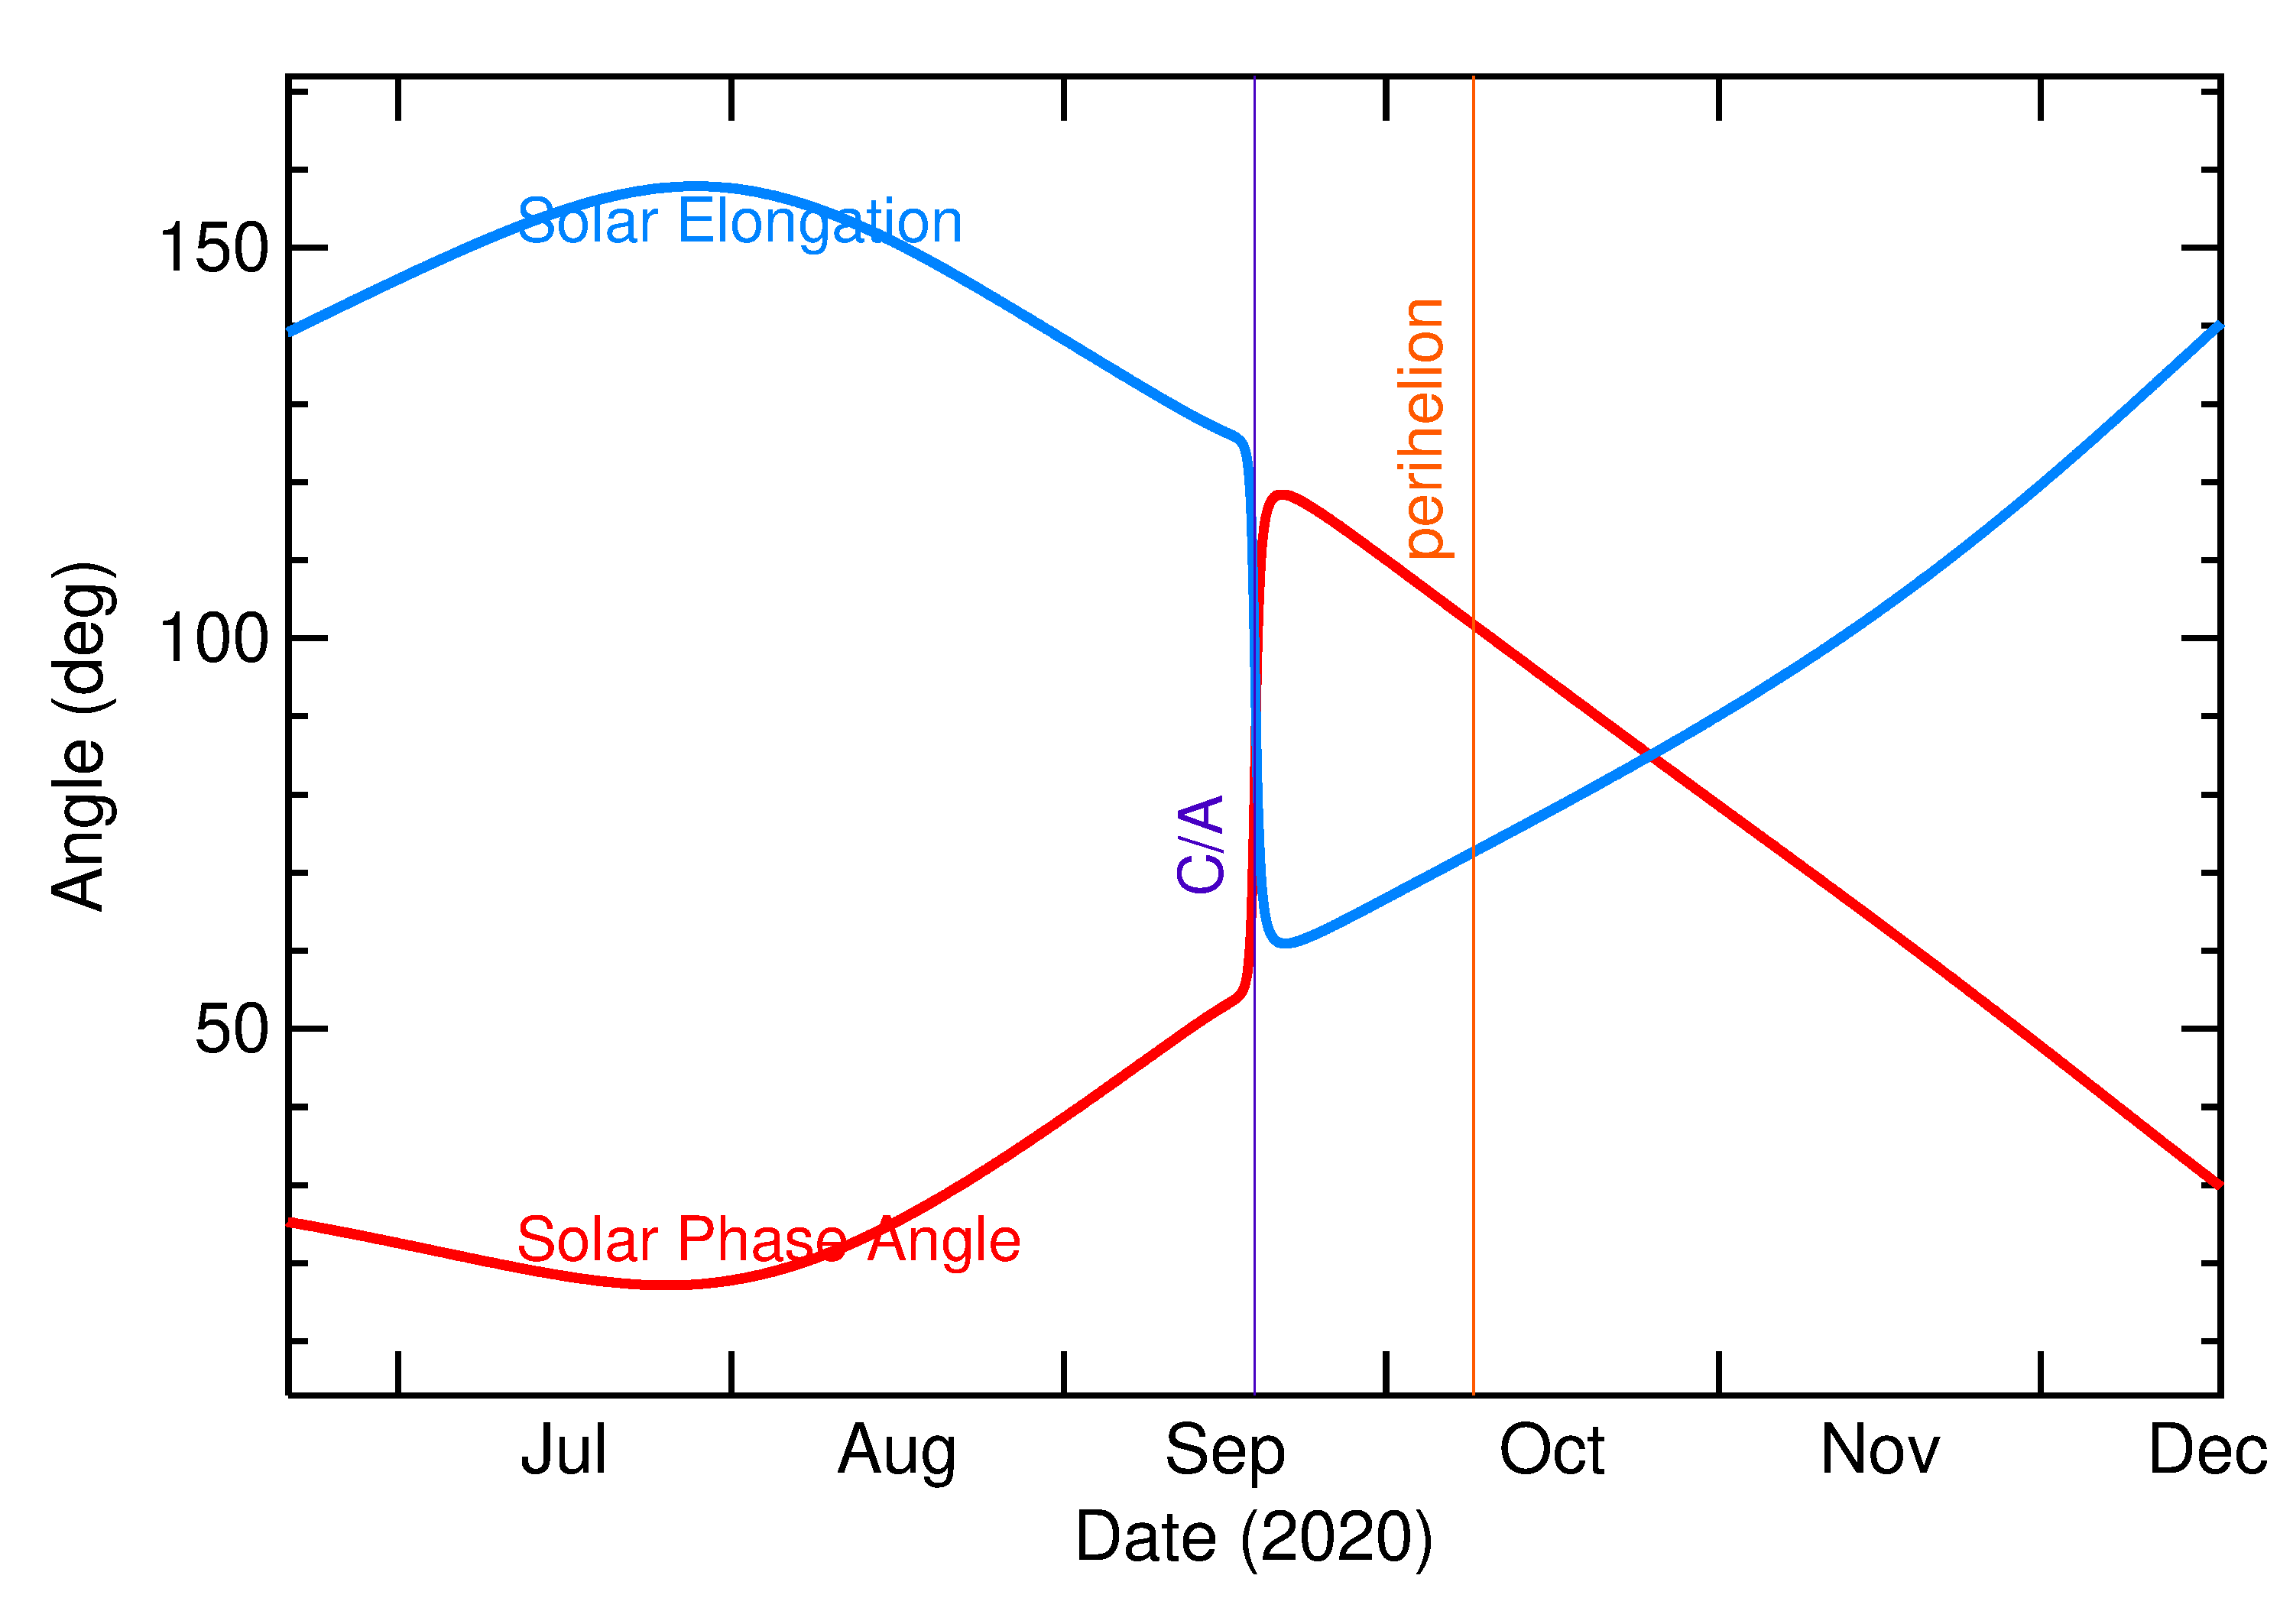 Solar Elongation and Solar Phase Angle of 2020 RZ6 in the months around closest approach